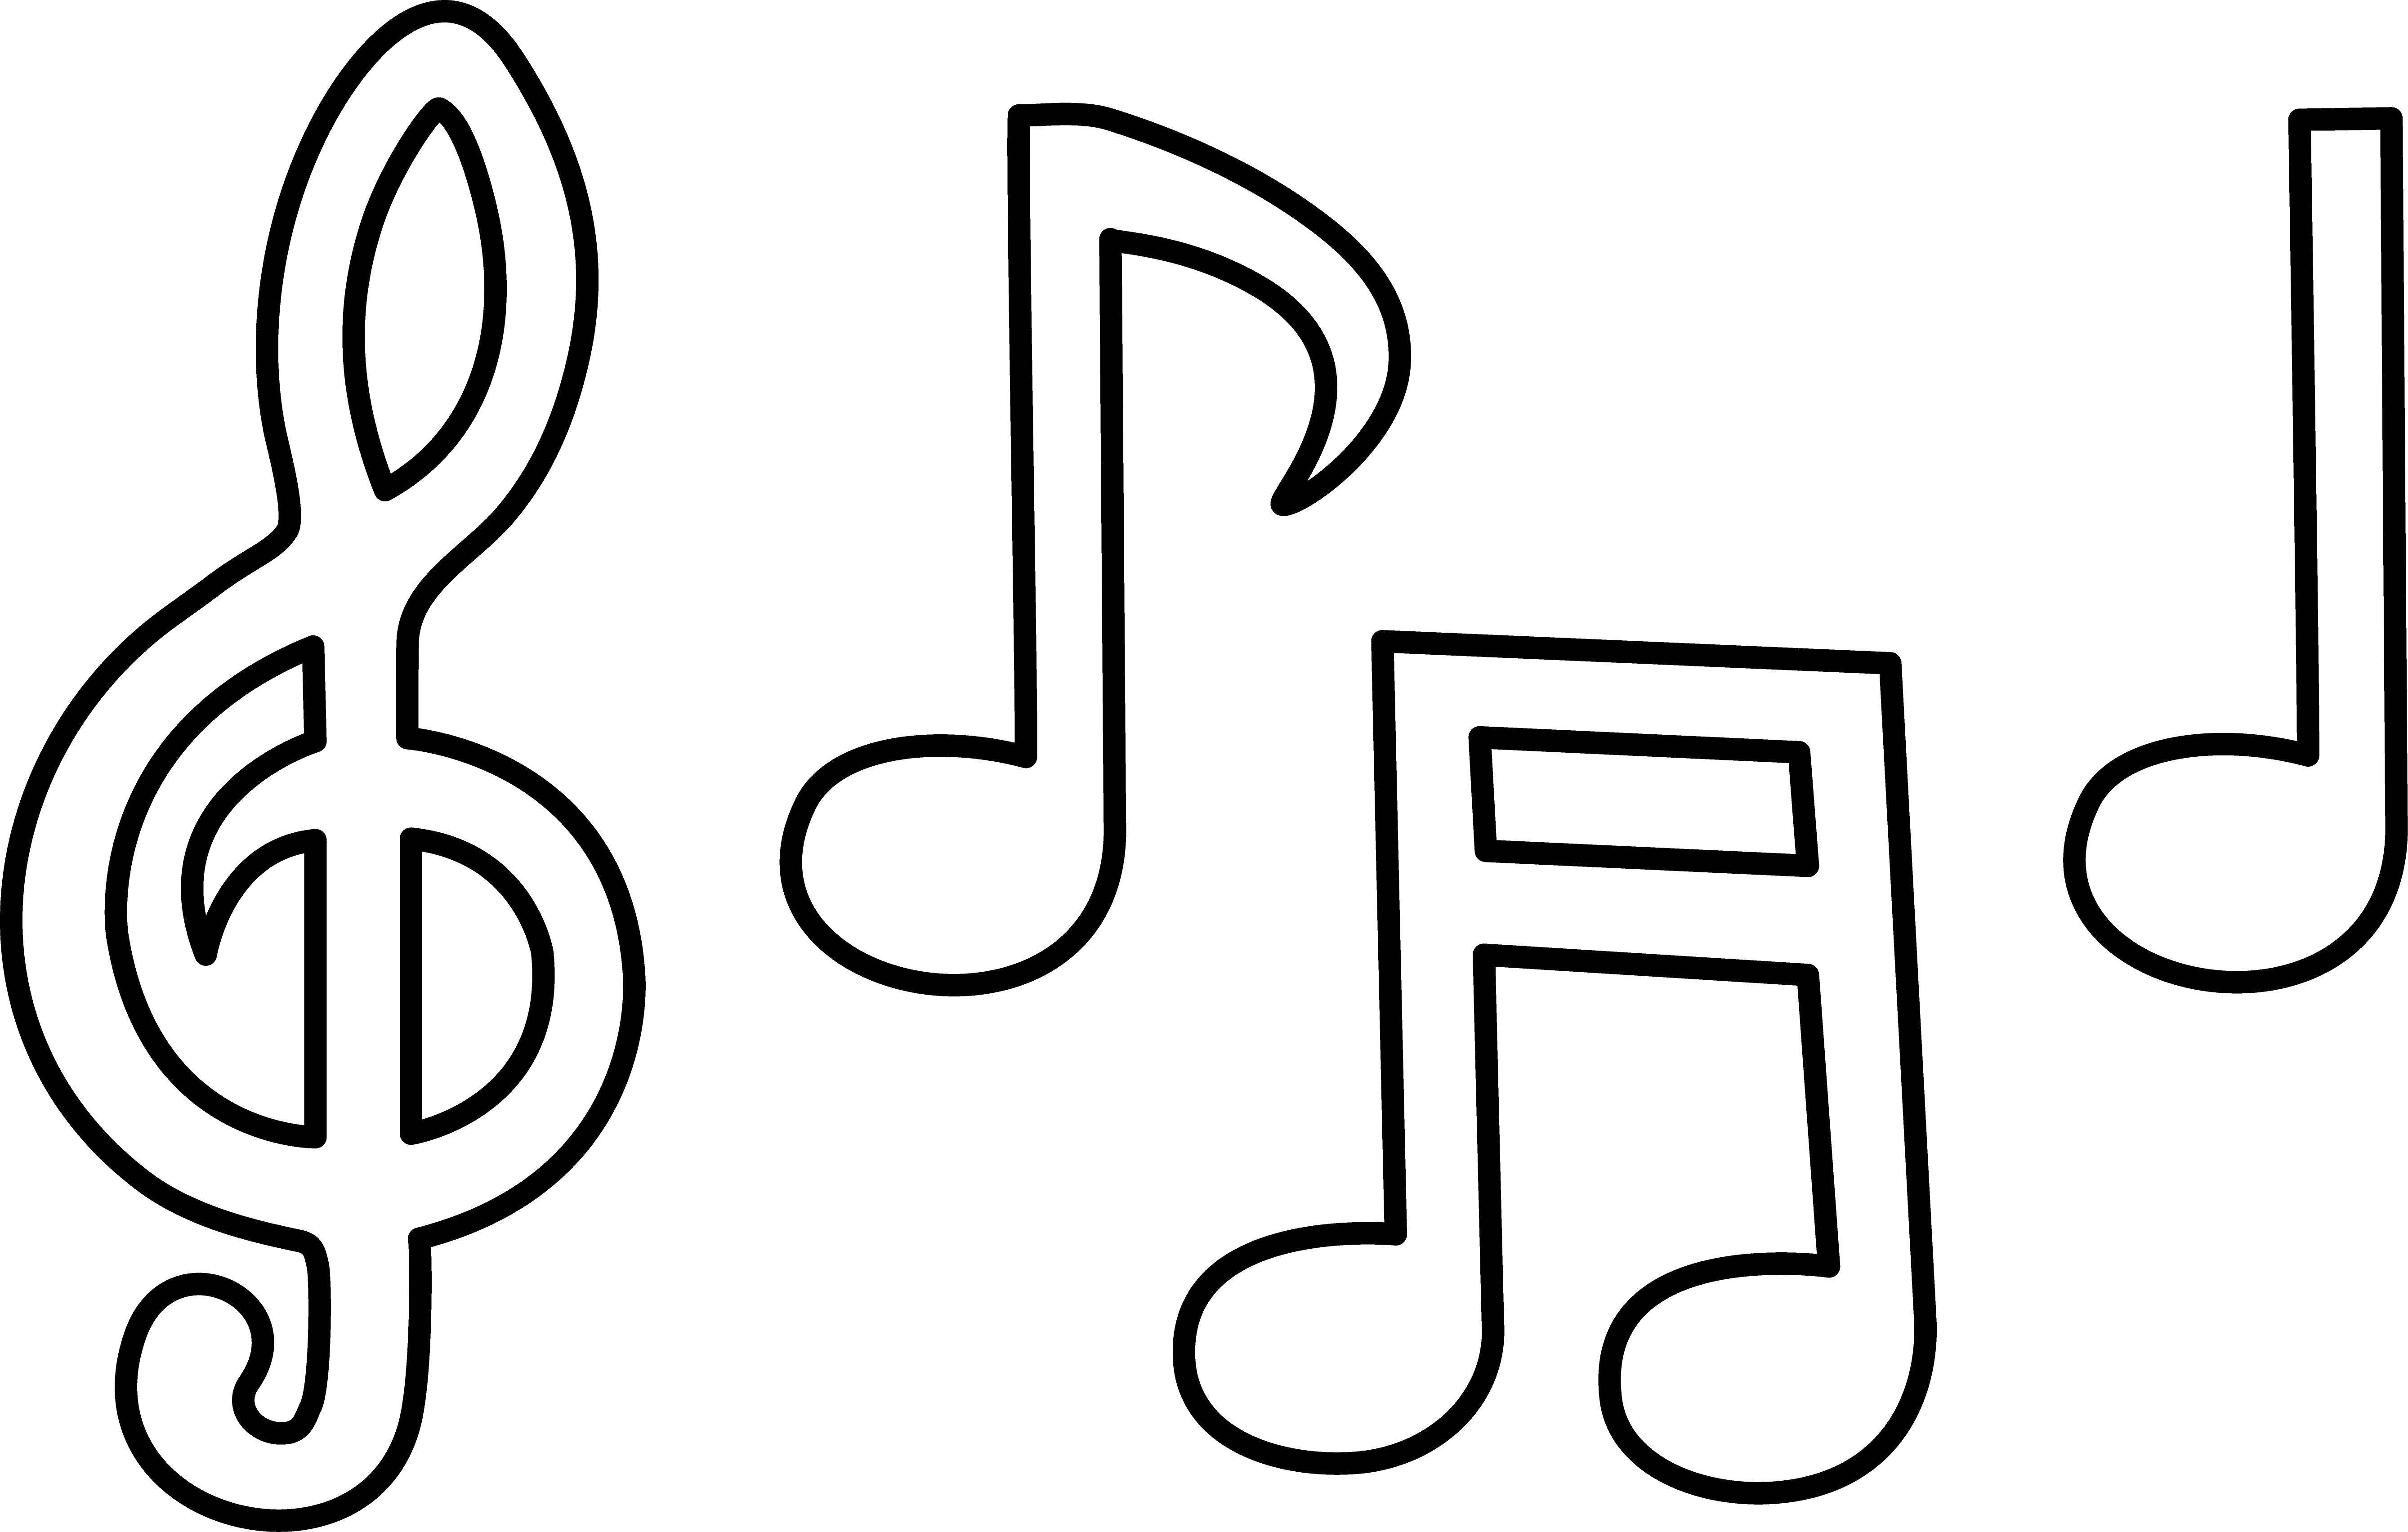 Coloring Templates music Download treble clef, notes.  Print ,Templates for cutting out,